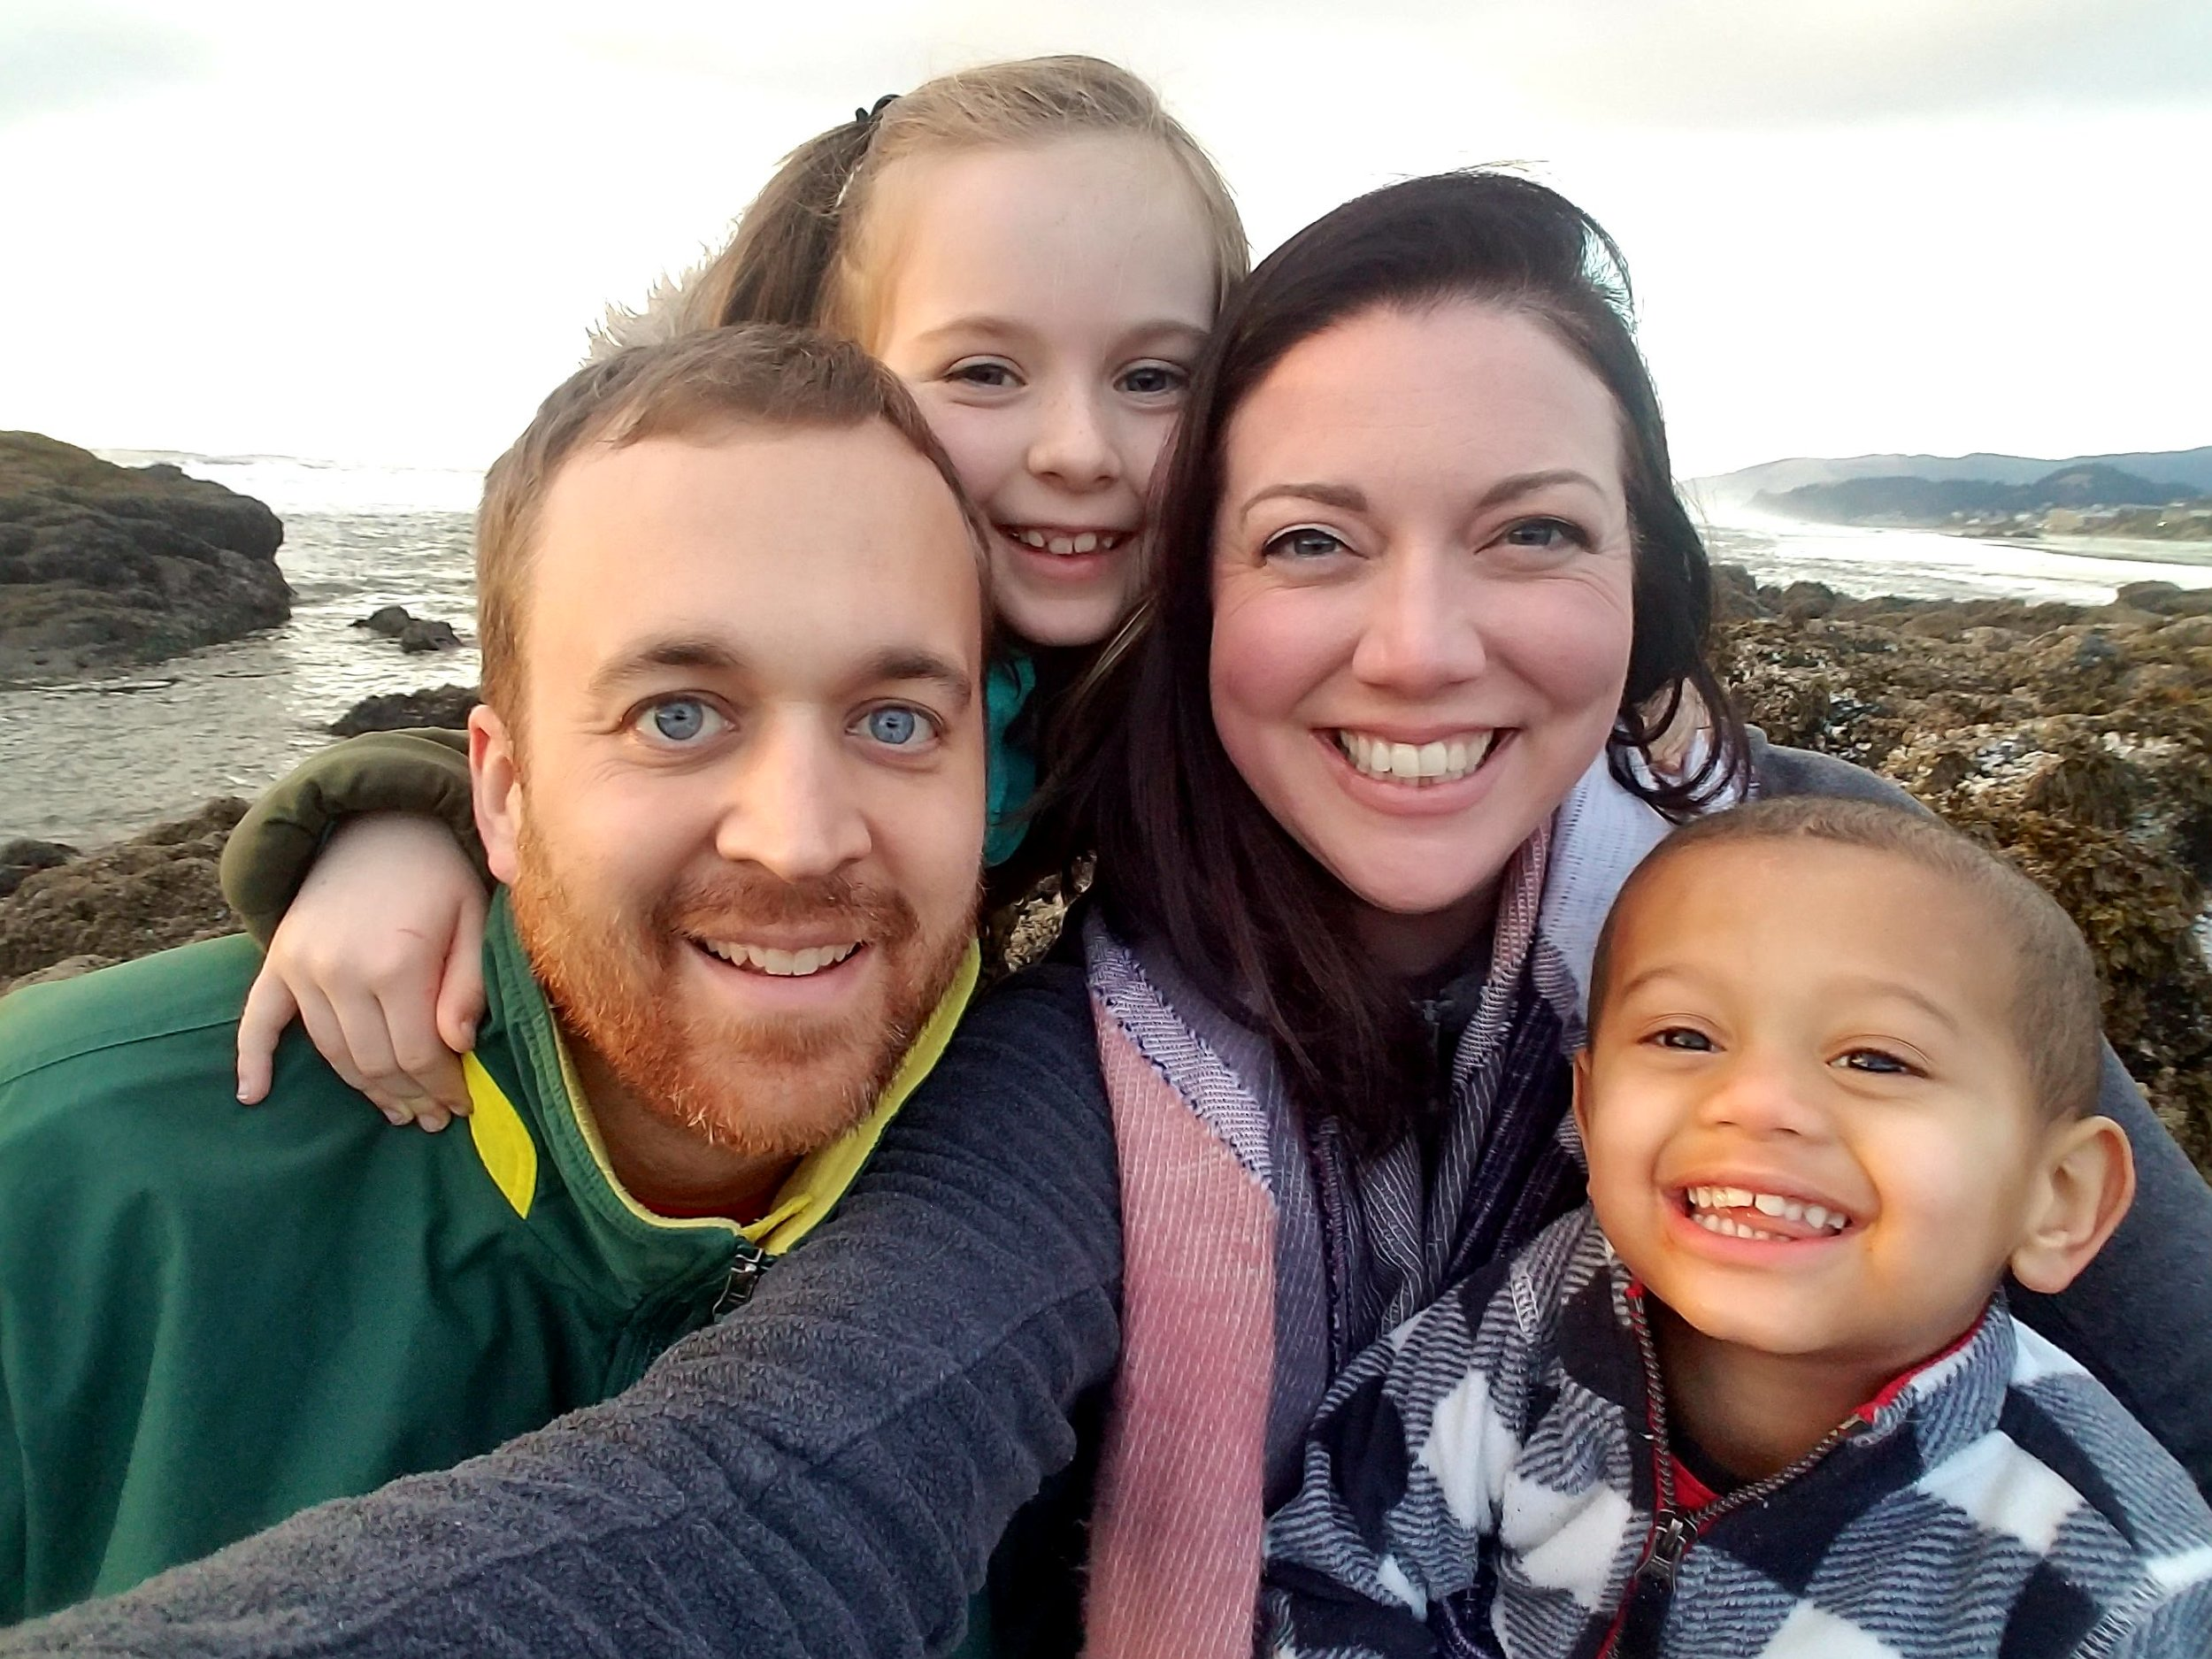 Happiness one day at a time through foster care adoption -